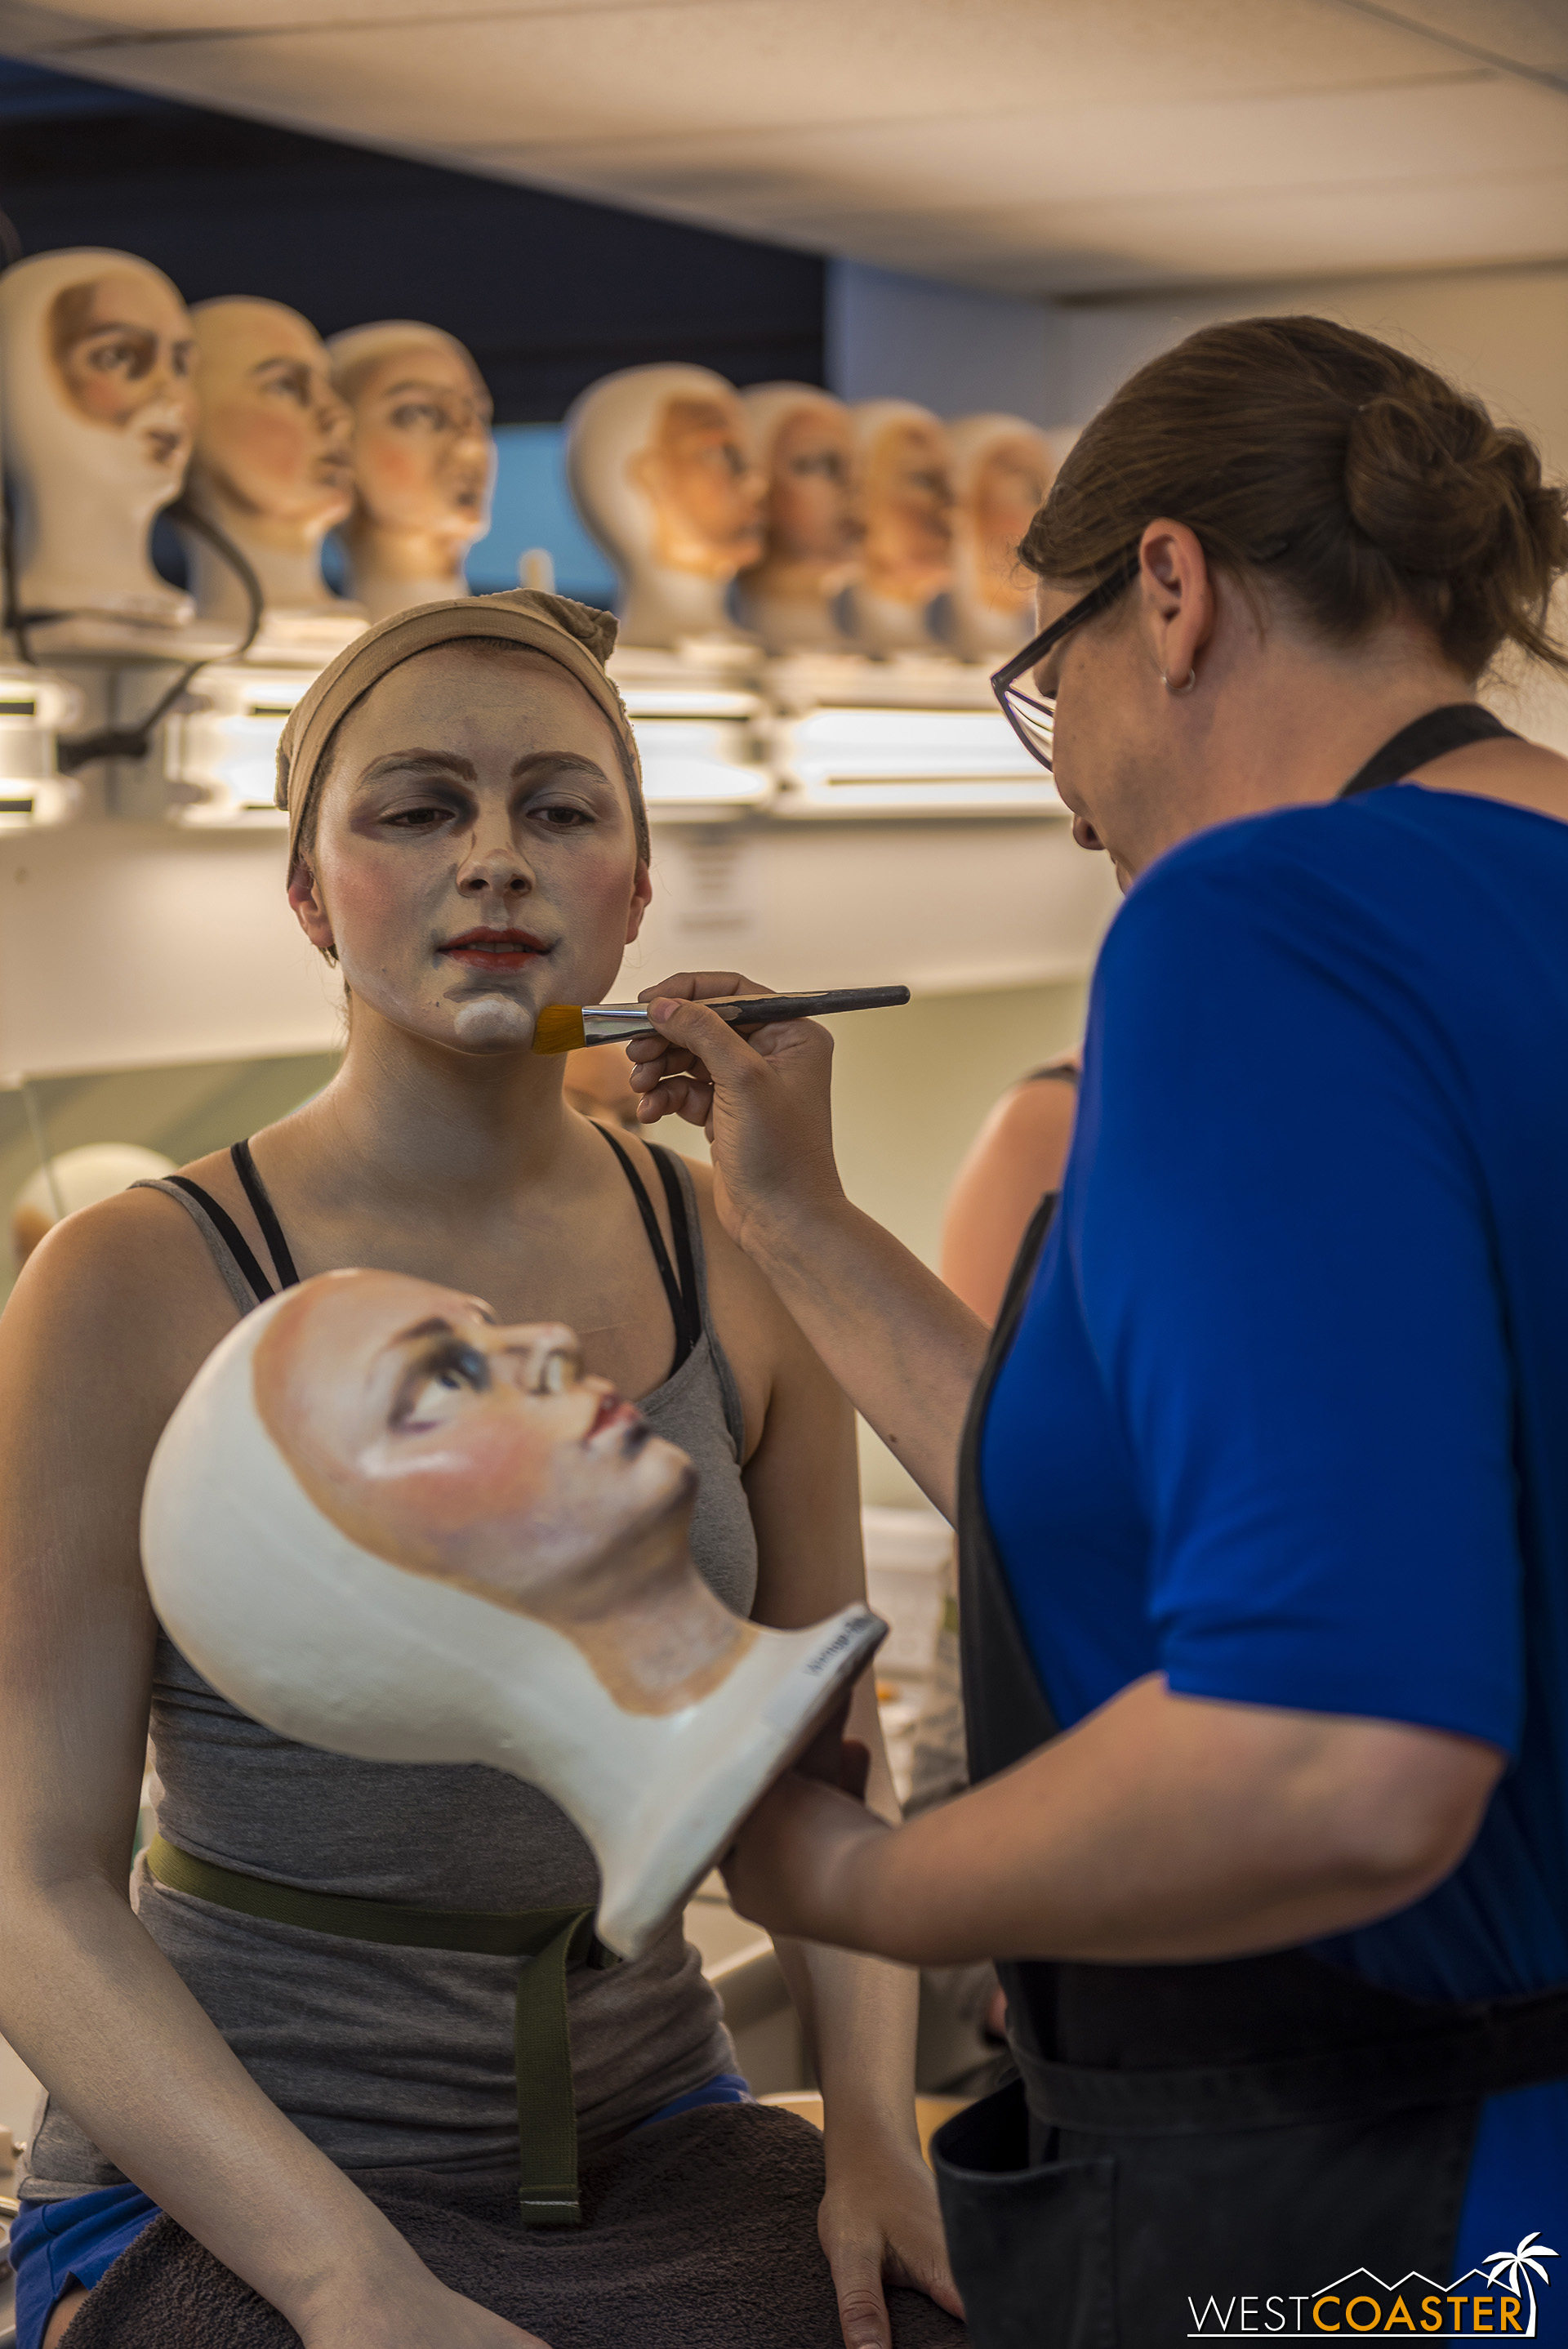 The artists apply makeup on model heads for additional reference, to hone efficiency.